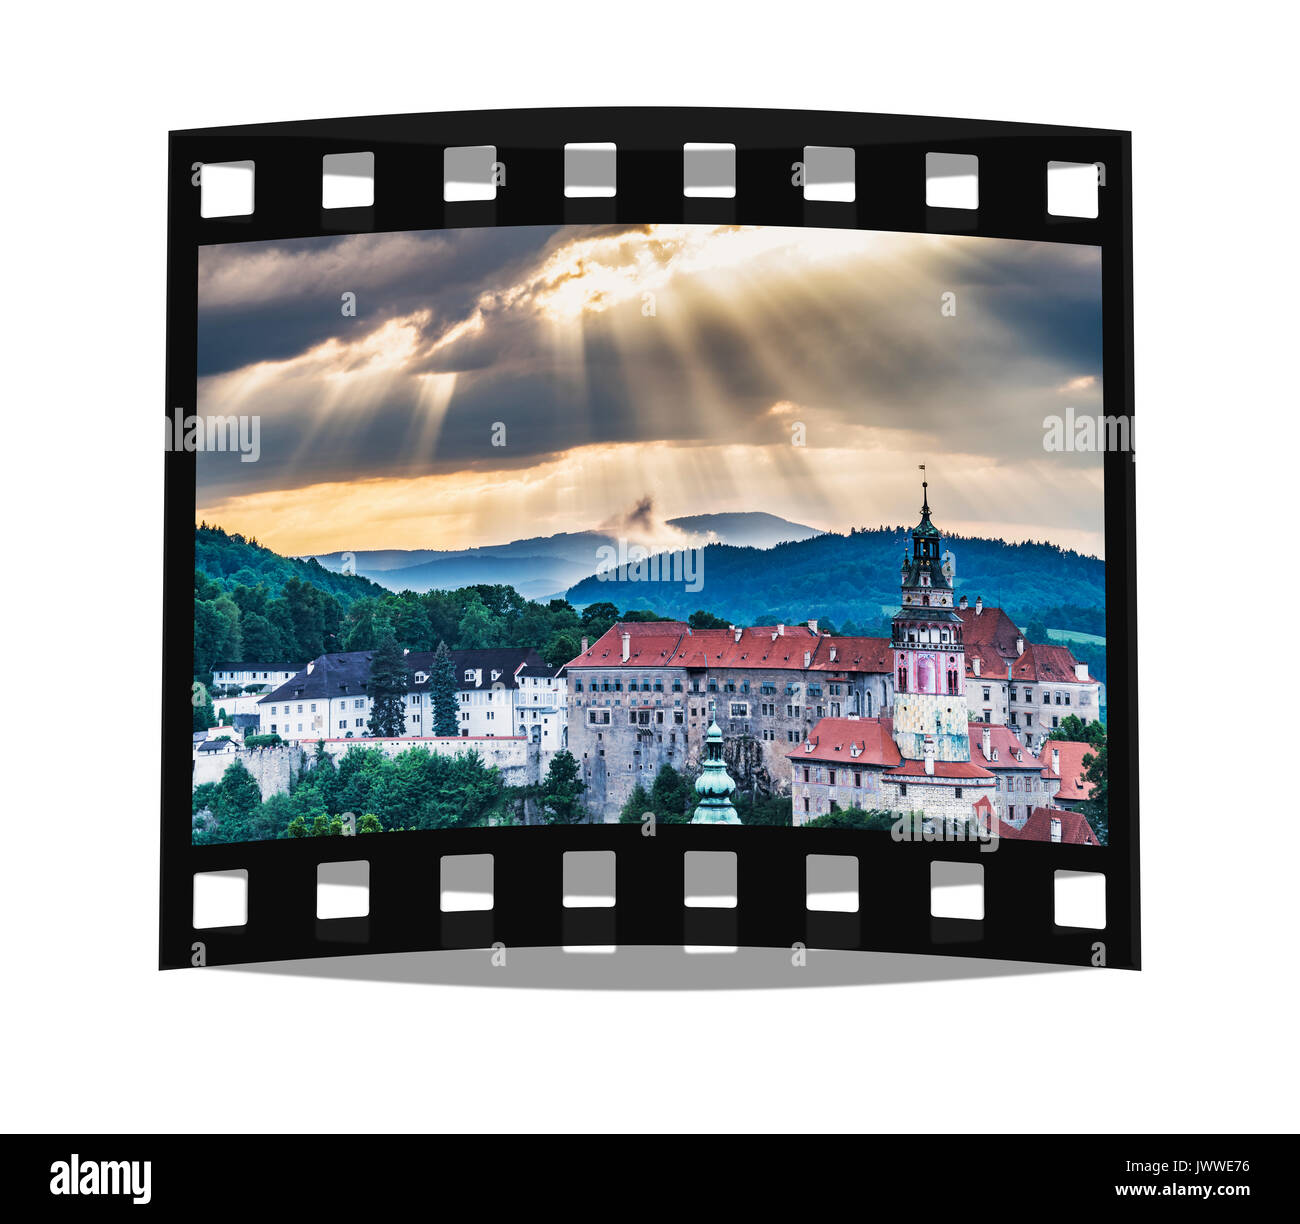 View of the old town of Chesky Krumlov and the Castle Chesky Krumlov in the evening, Bohemia, Jihocesky Kraj, Czech Republic, Europe - Stock Image